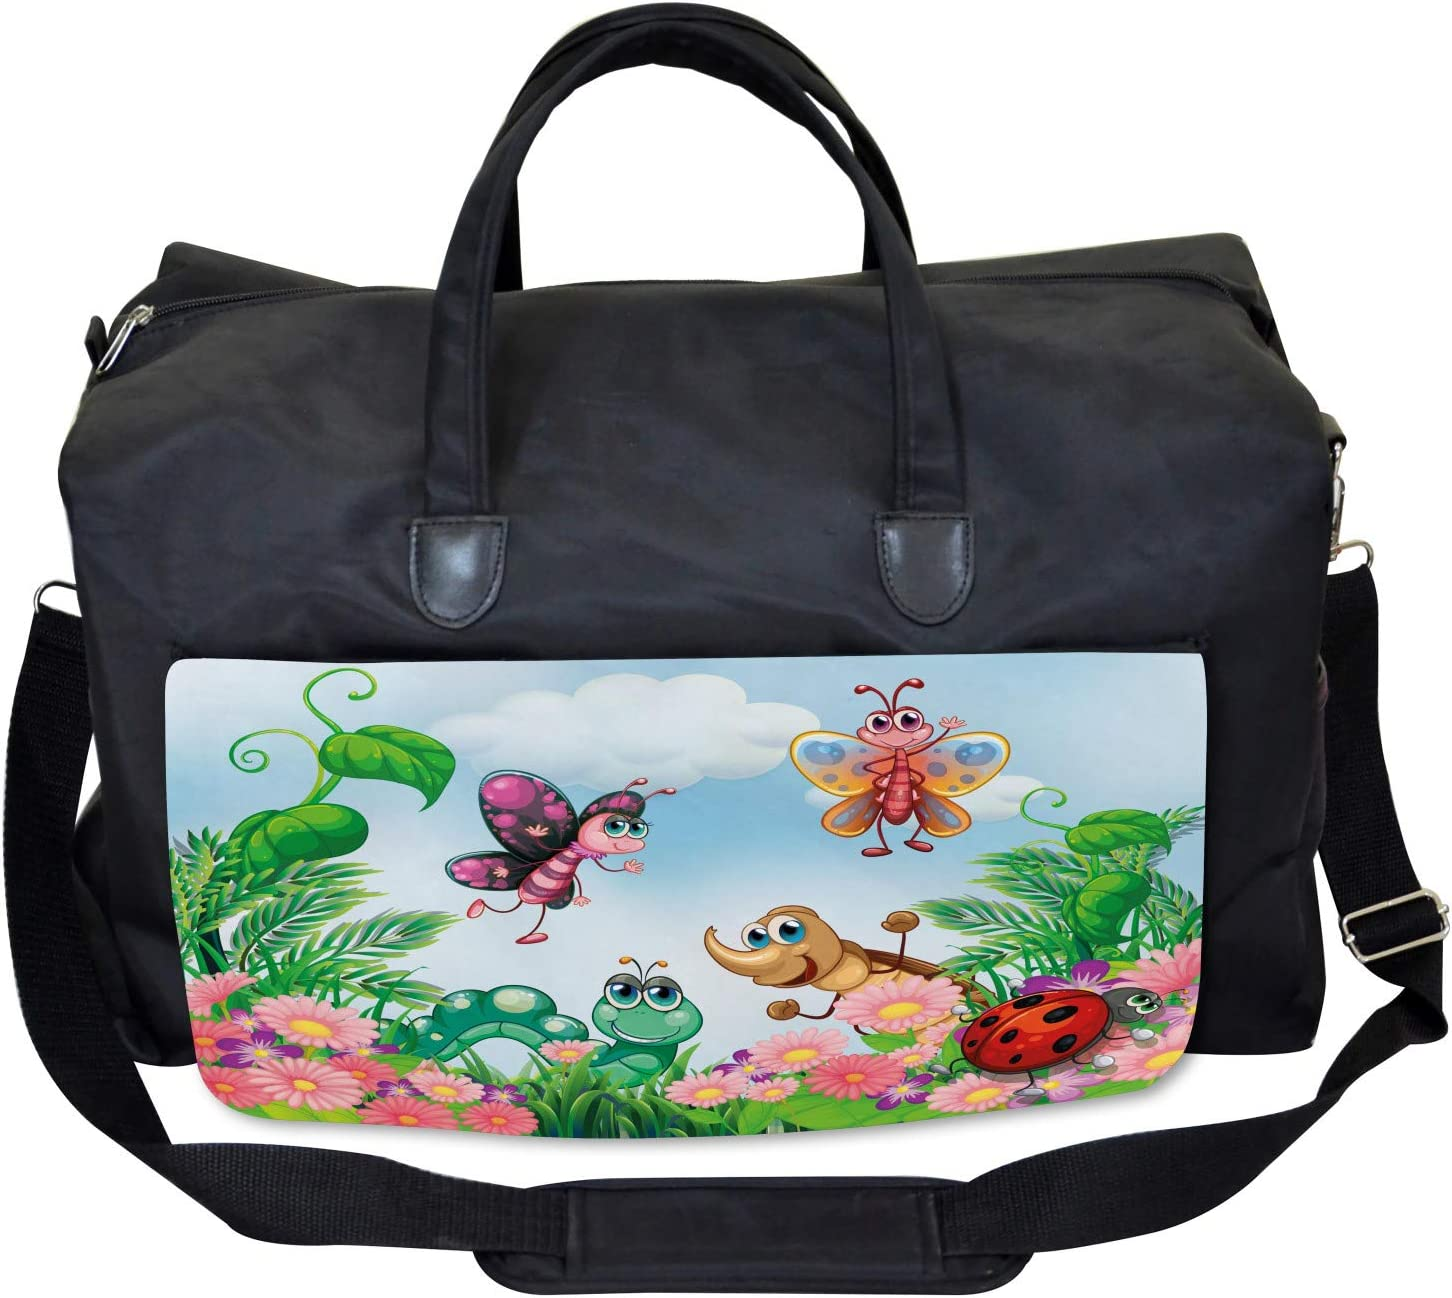 Large Weekender Carry-on Ambesonne Garden Gym Bag Butterfly Ladybug Worm